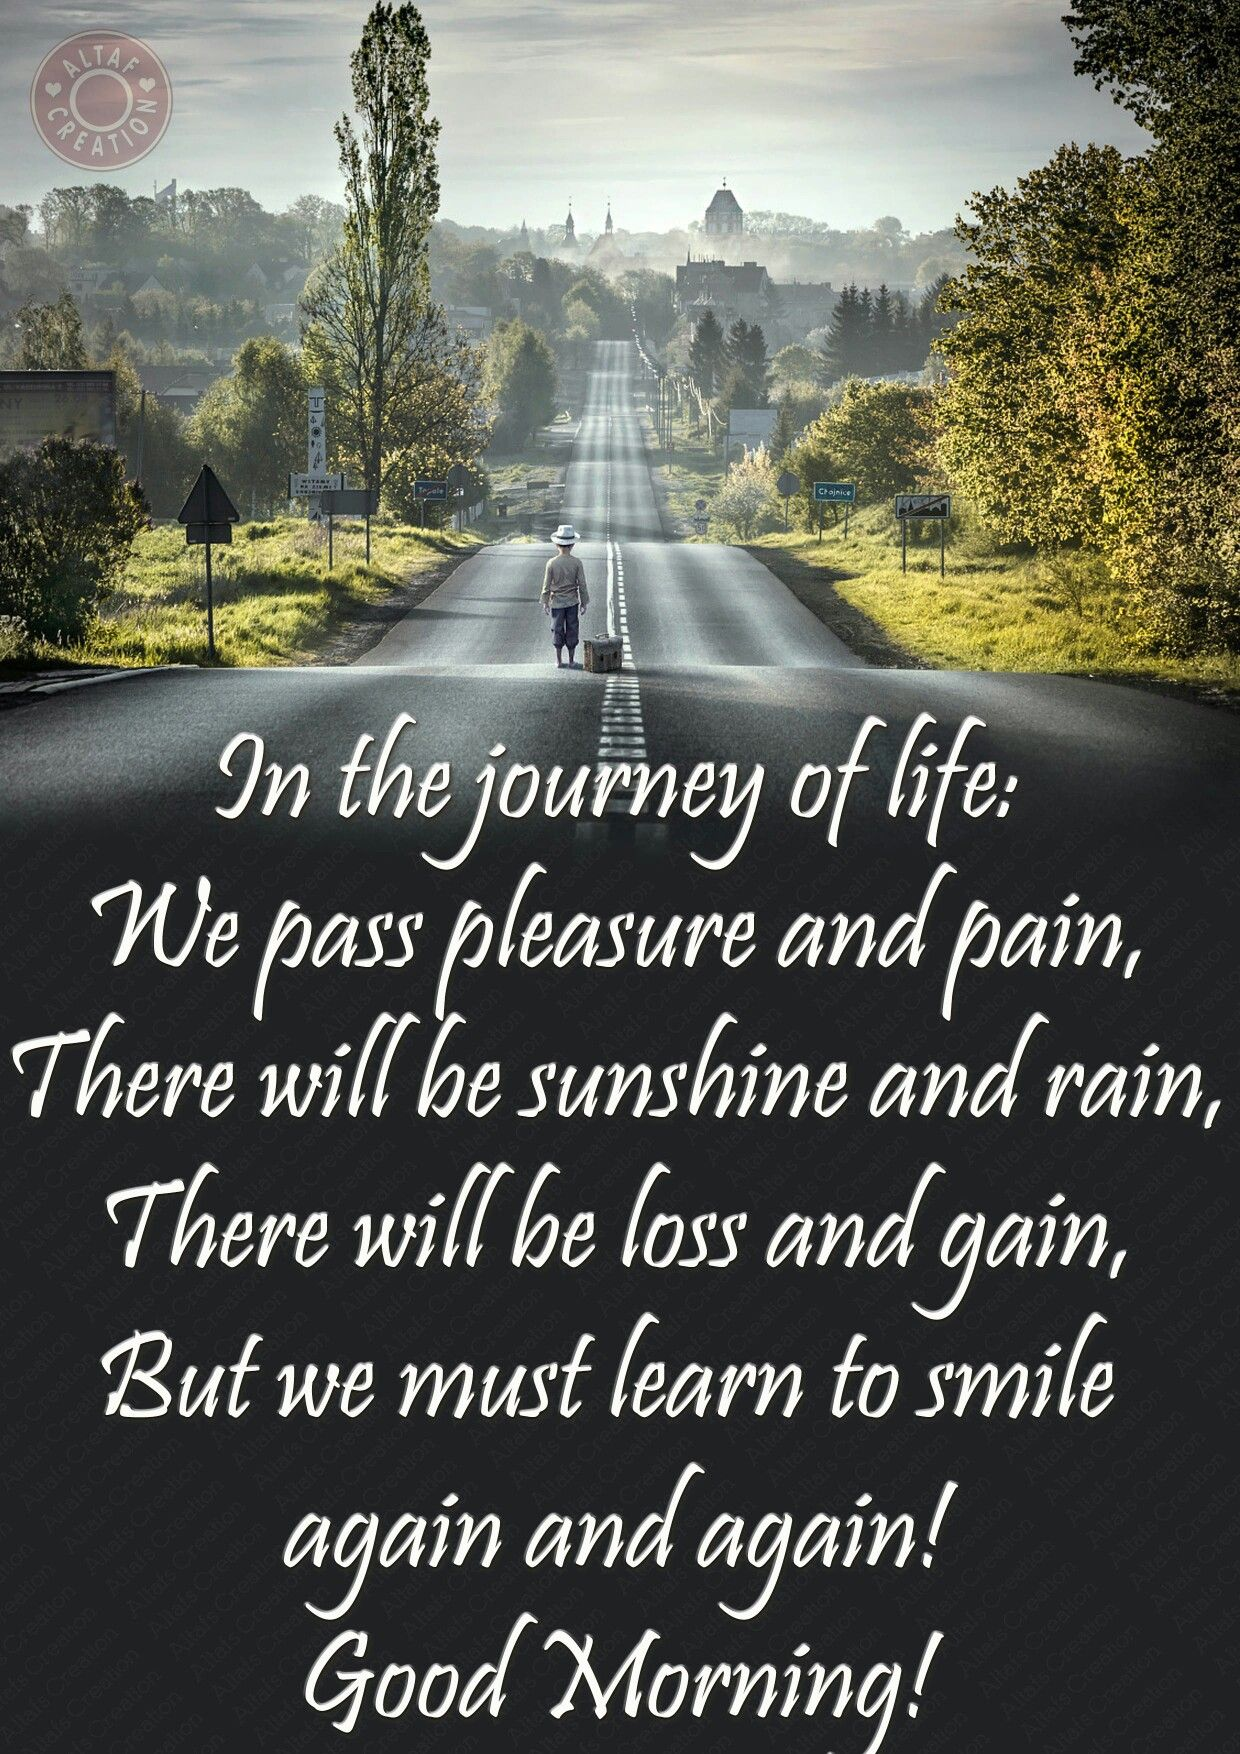 Pin By Suchitra On Altaf Lokhandwala Happy Good Morning Quotes Good Morning Friends Quotes Wonderful Day Quotes